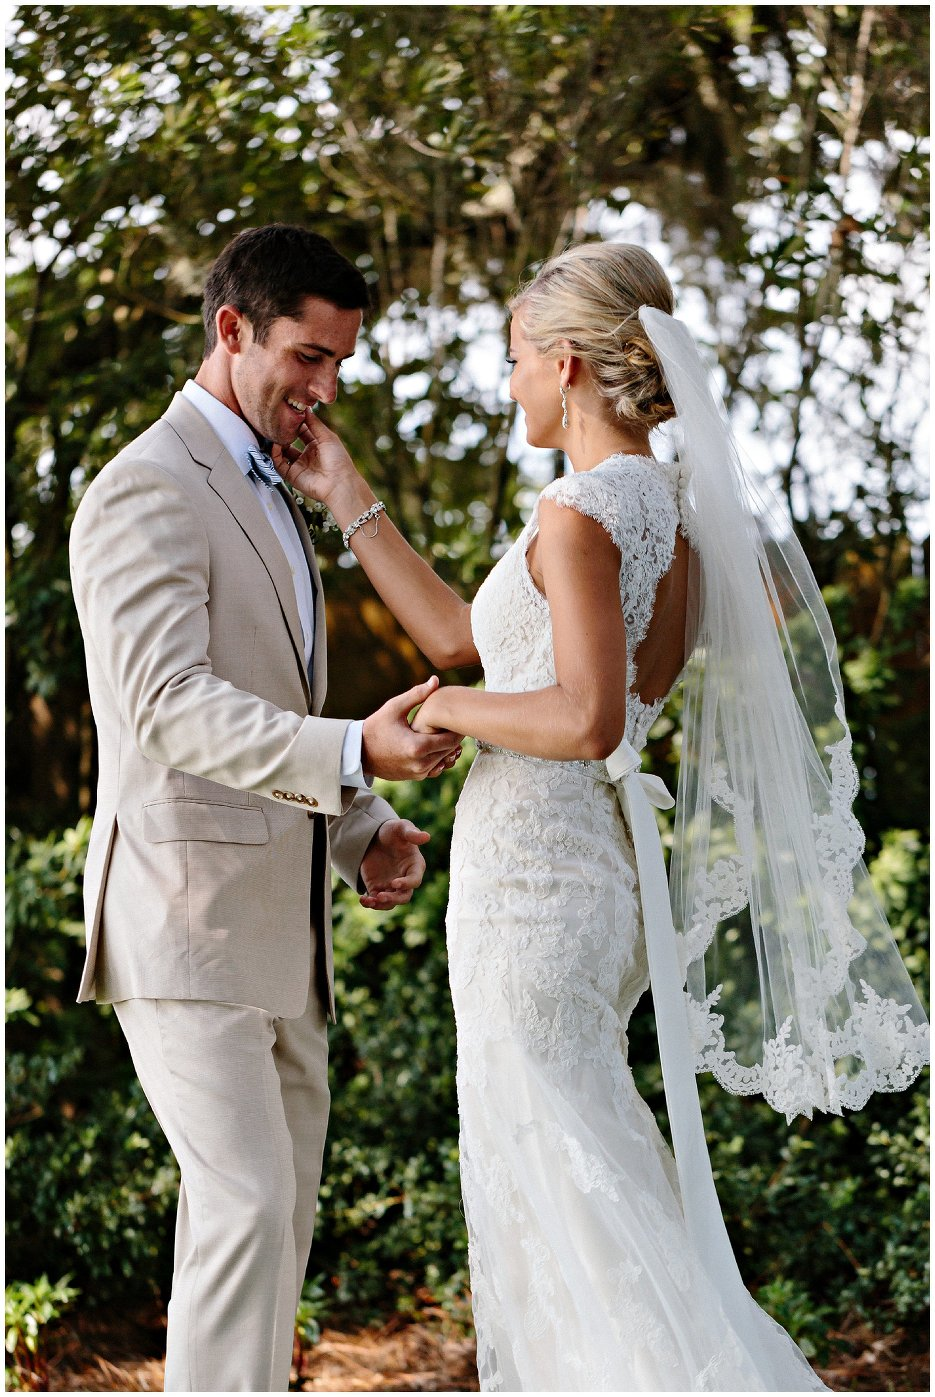 Recommended Reading Destin Beach Weddings Middot Laurie And Sheldon 39 S Florida Wedding